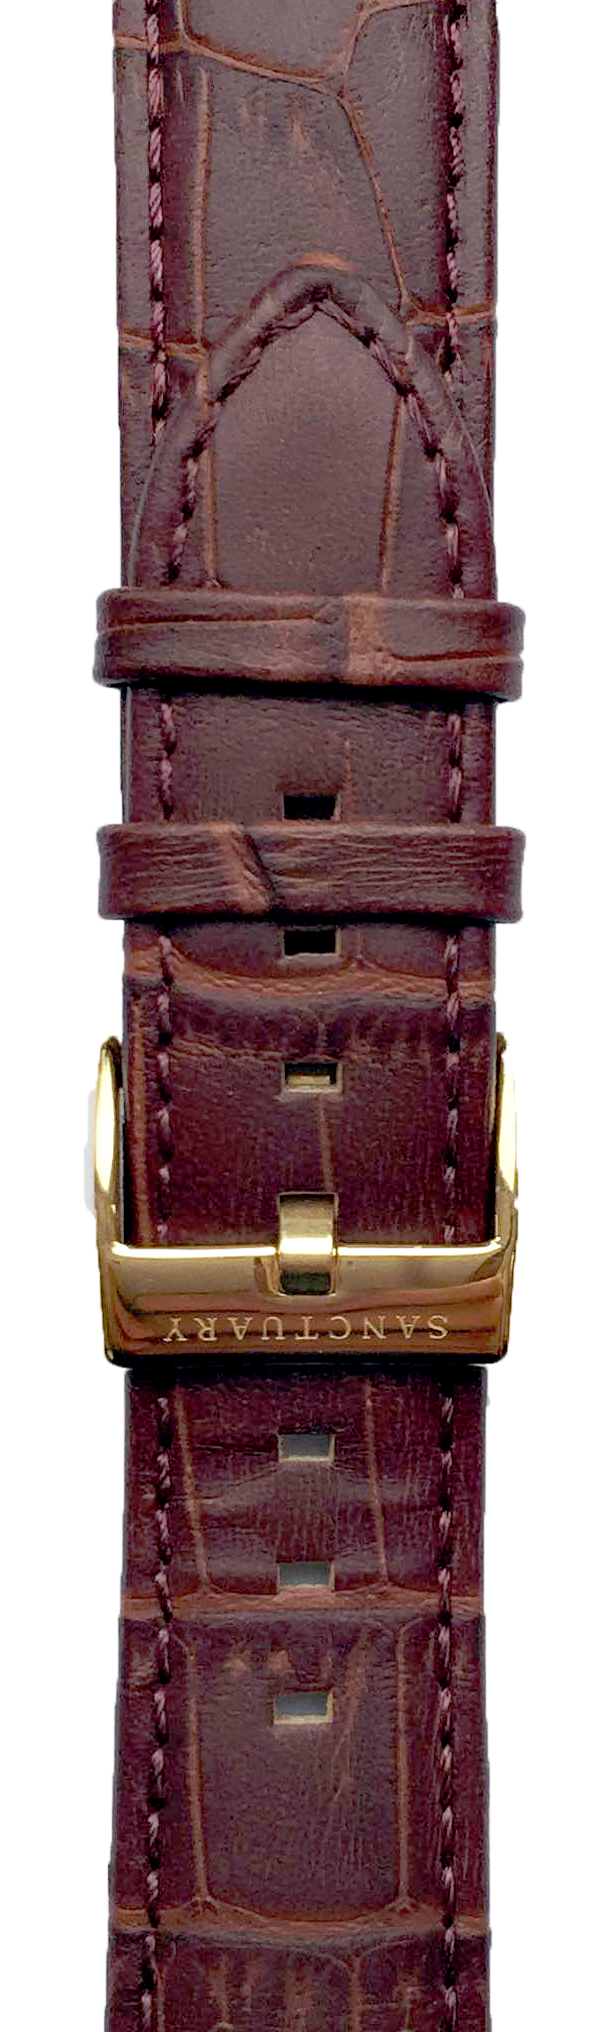 Chestnut Brown Leather Strap - Sanctuary Luxury Watches